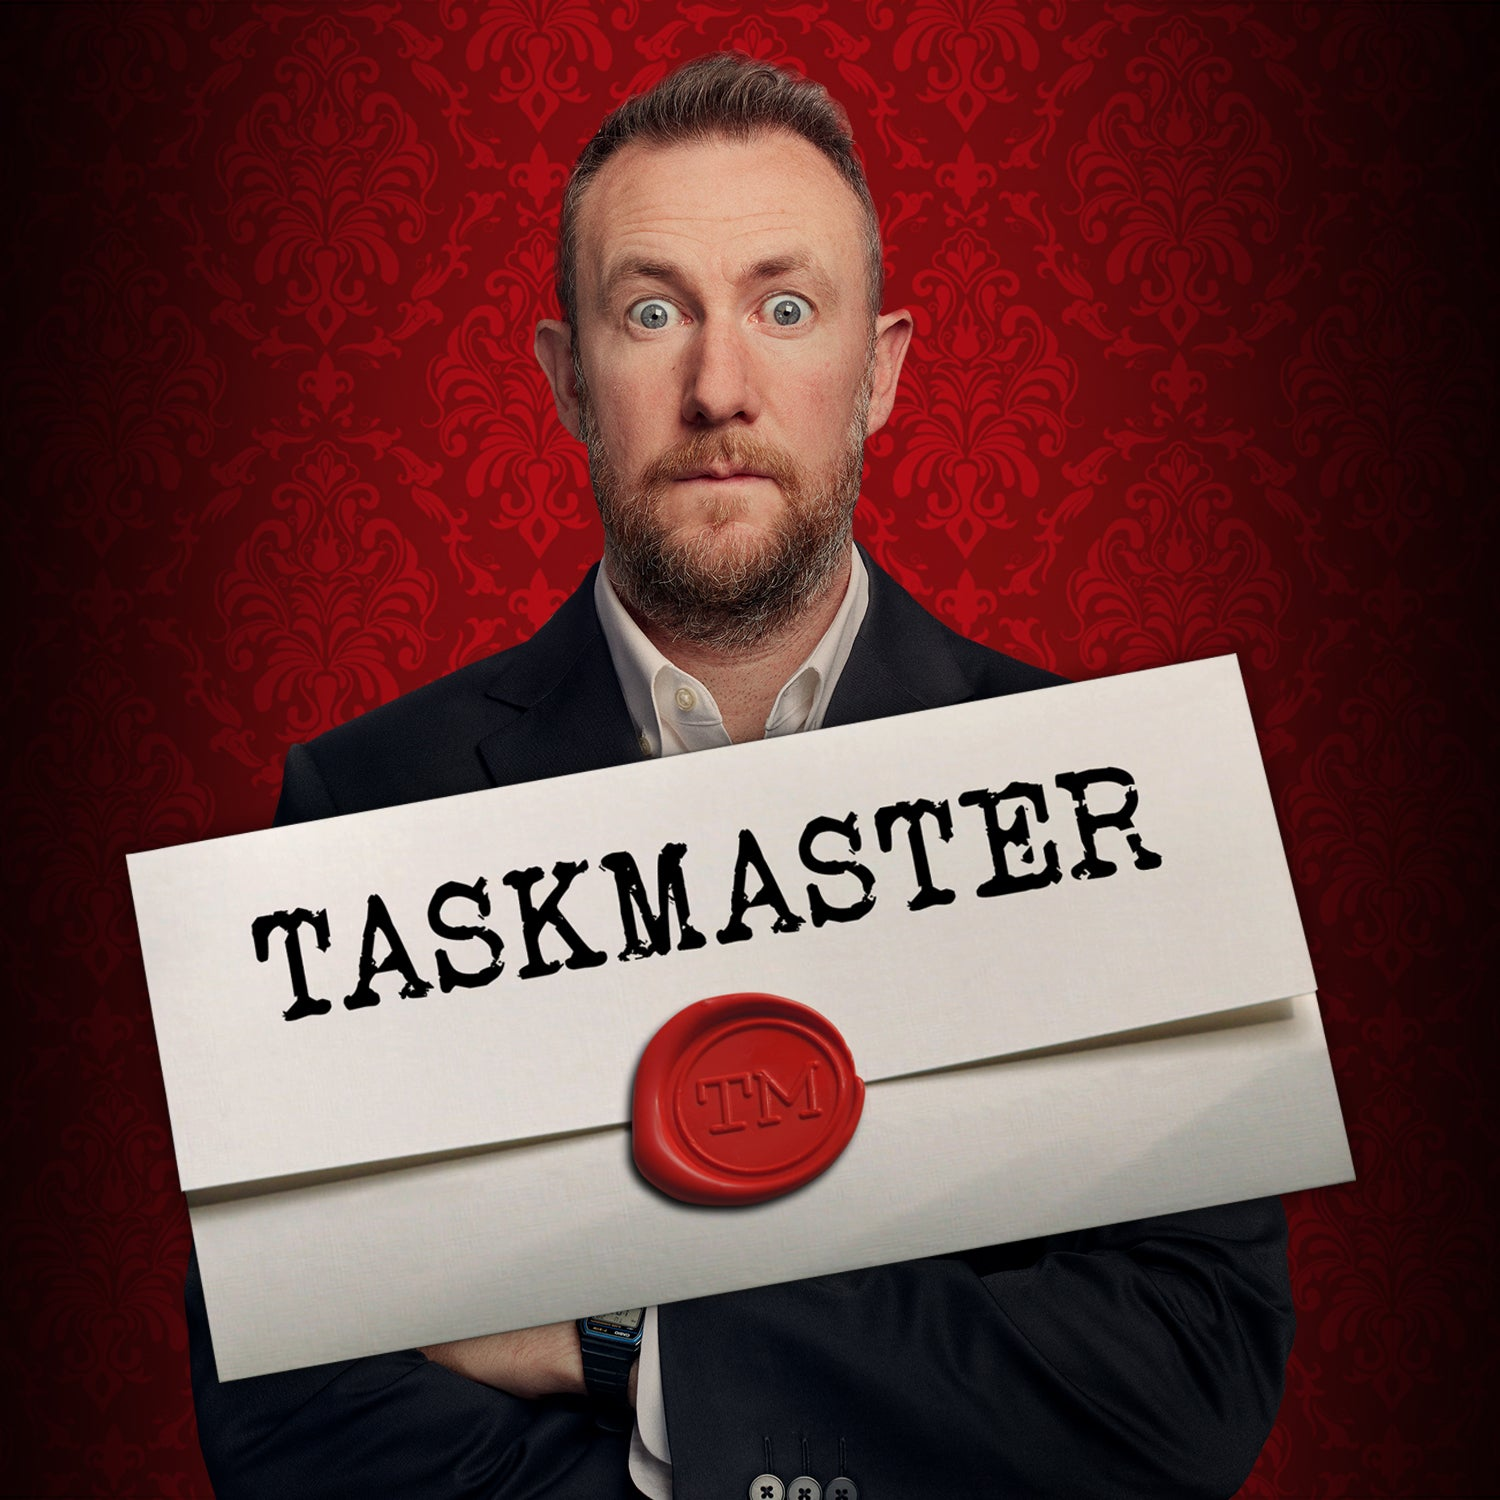 Taskmaster at home charity video